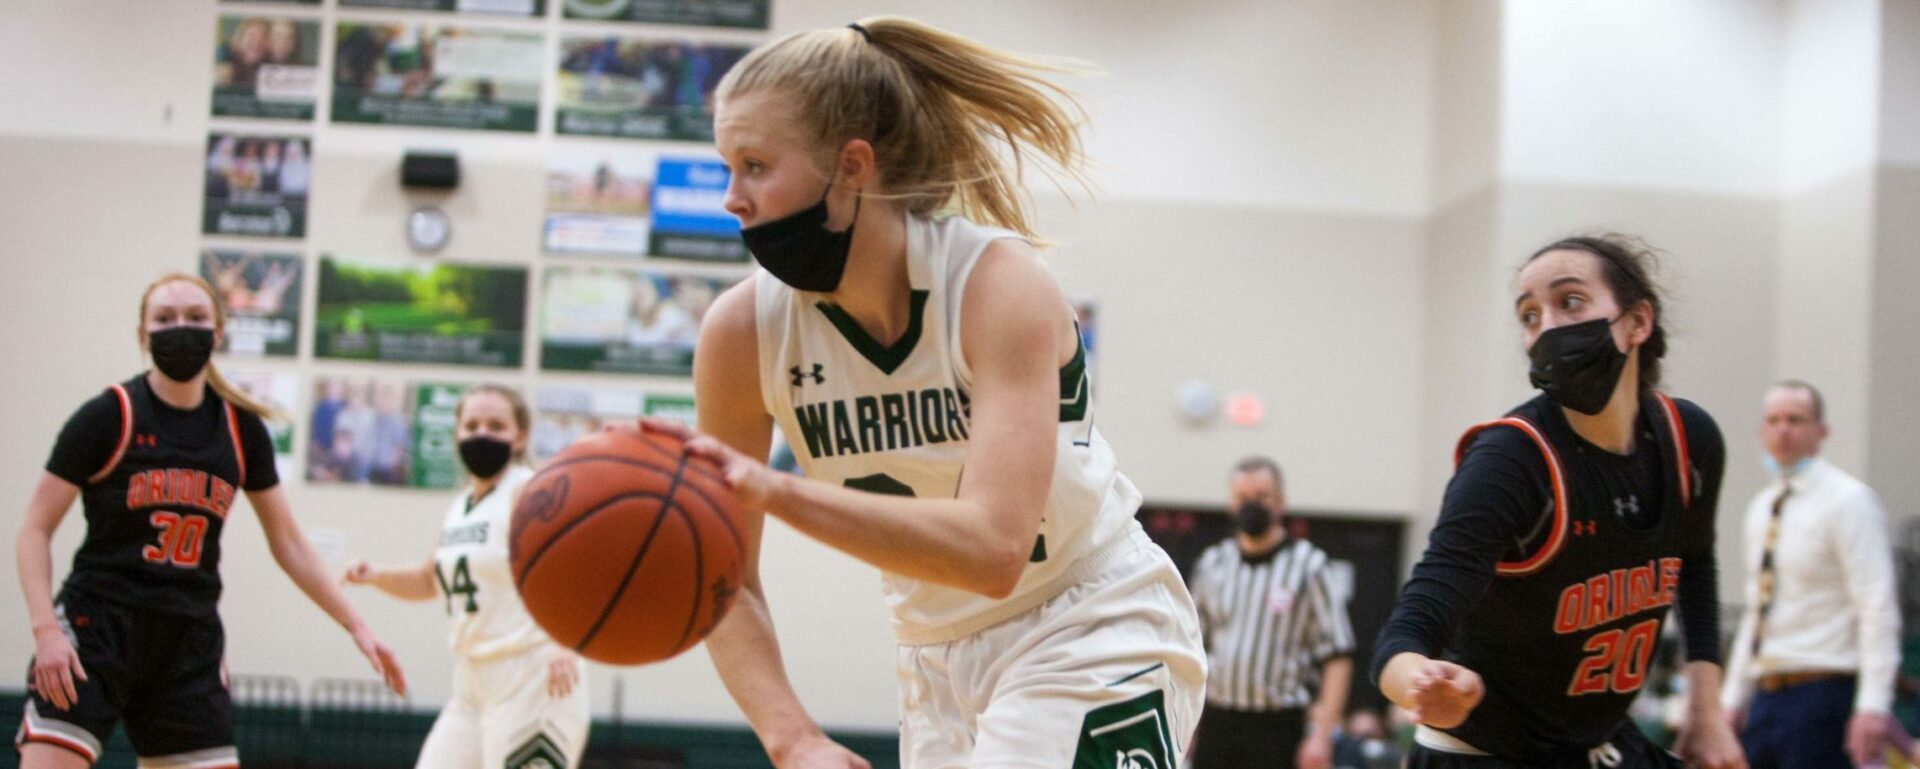 Western Michigan Christian girls beat Ludington to avenge an earlier loss, claim a share of the Lakes 8 Conference title